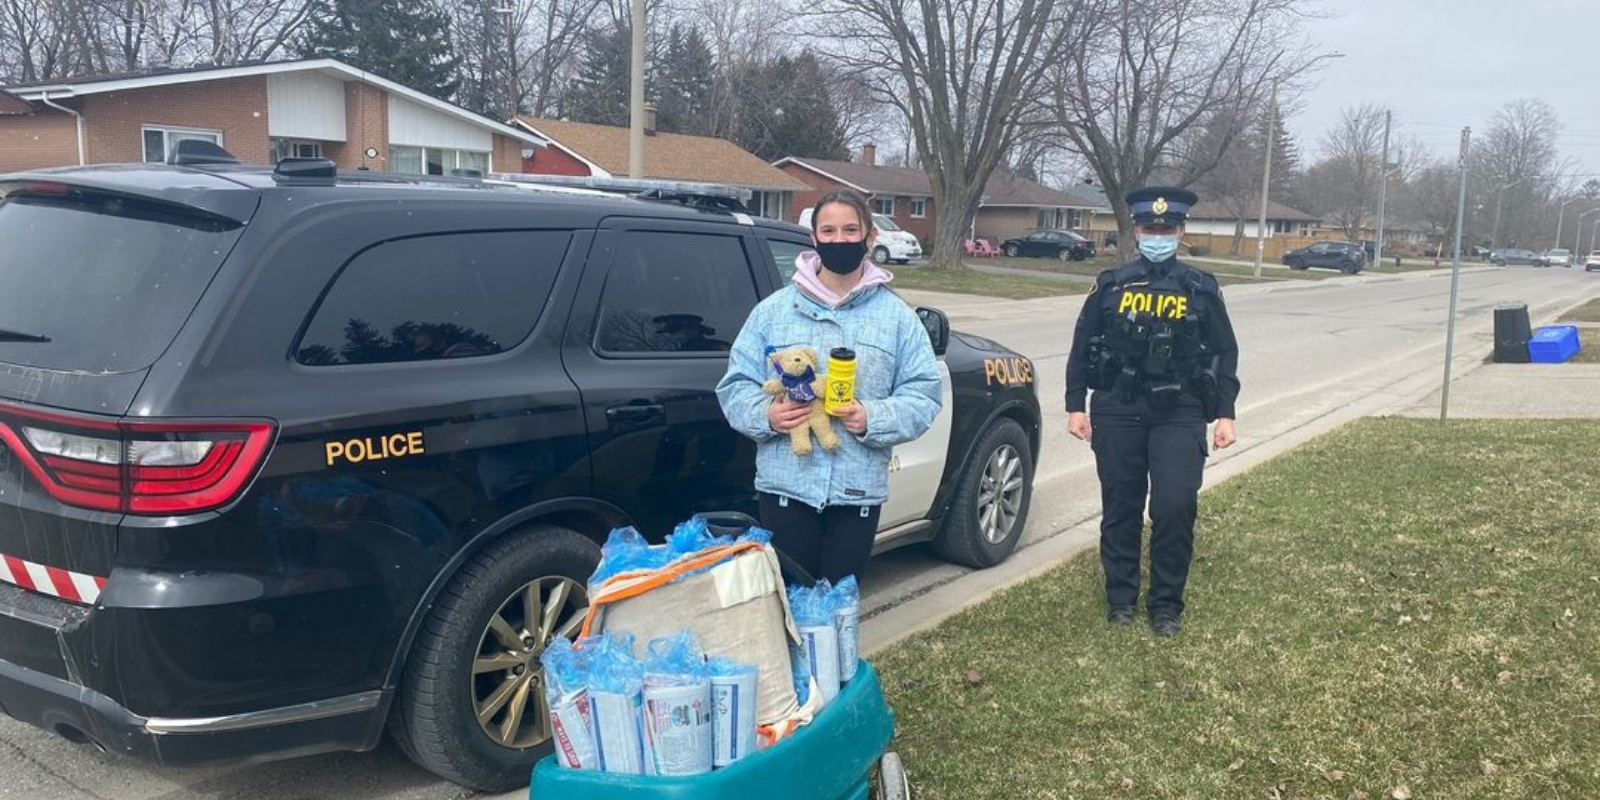 12-year-old girl recognized by OPP after returning 'lost sizeable sum of money' to police